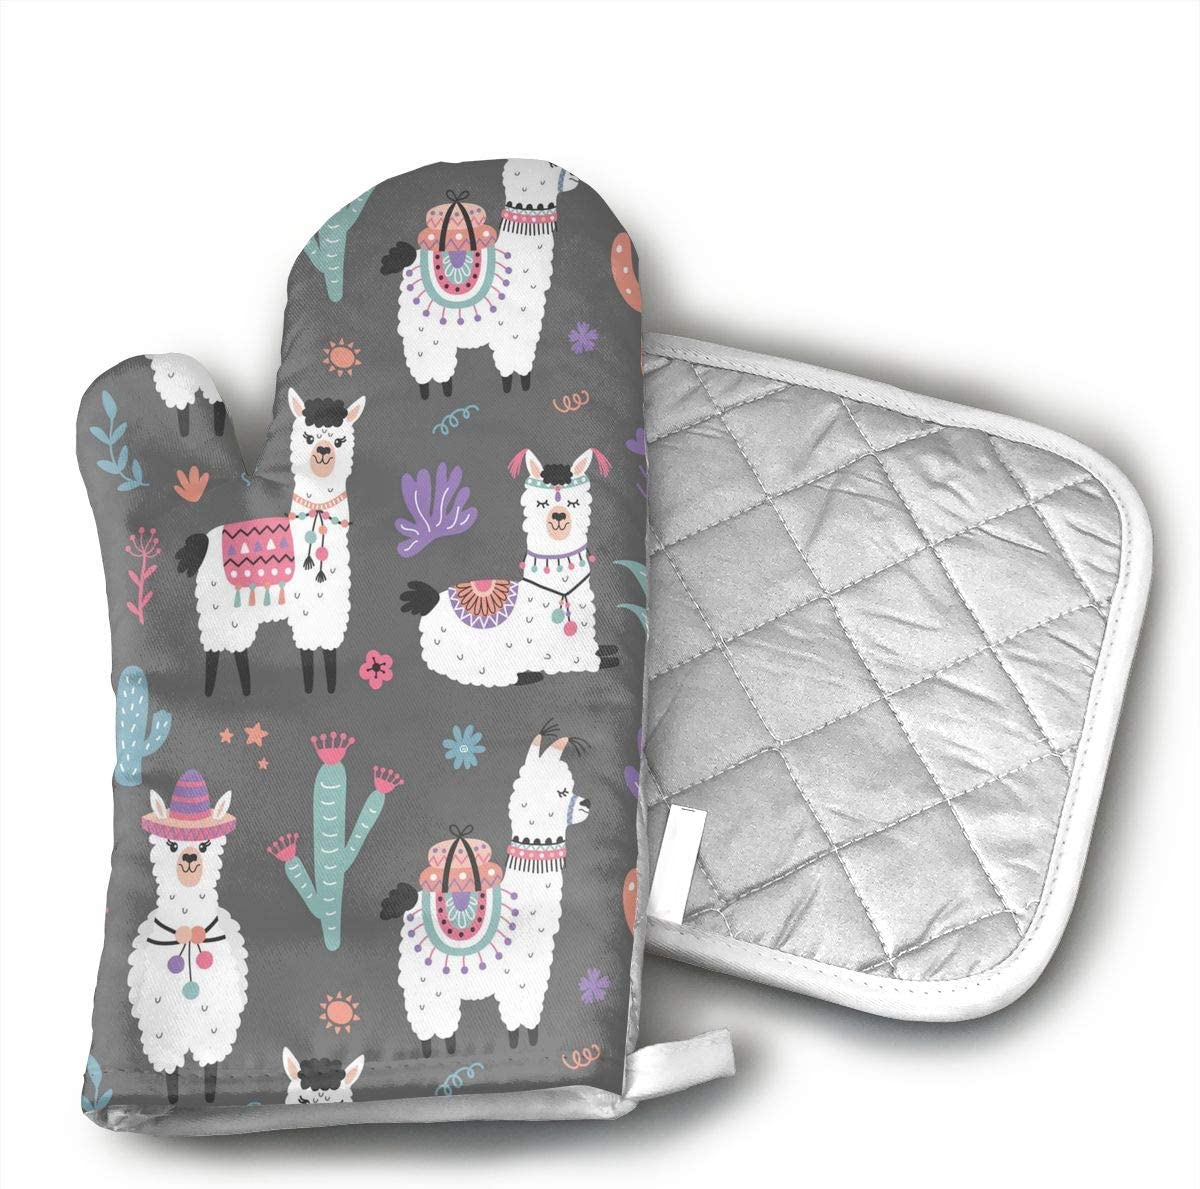 Cartoon Llama Alpaca Seamless Pattern Oven Mitts and Potholders (2-Piece Sets) - Kitchen Set with Cotton Heat Resistant,Oven Gloves for BBQ Cooking Baking Grilling